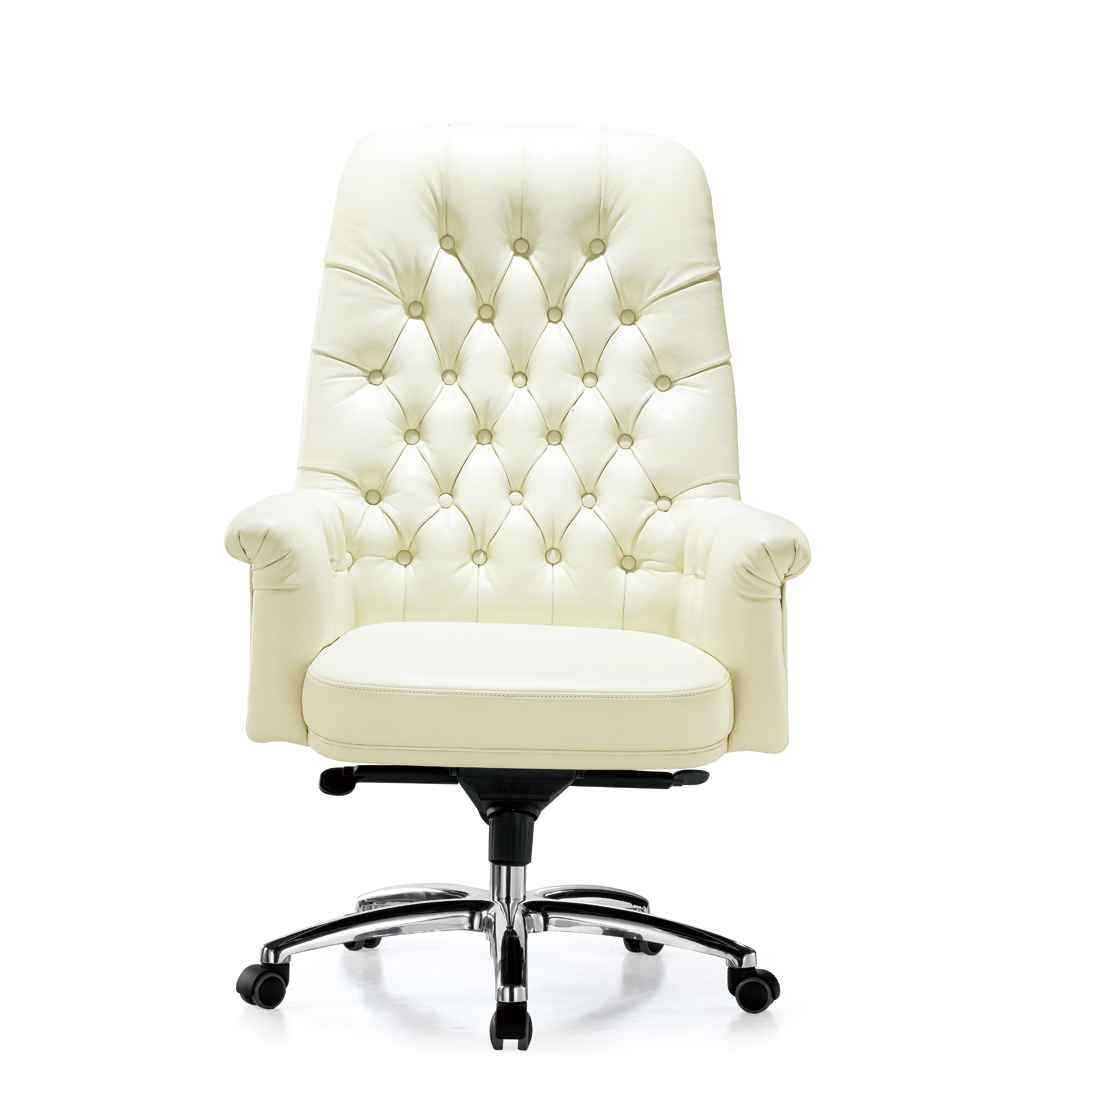 desk chairs white folding for sale leather chair furniture